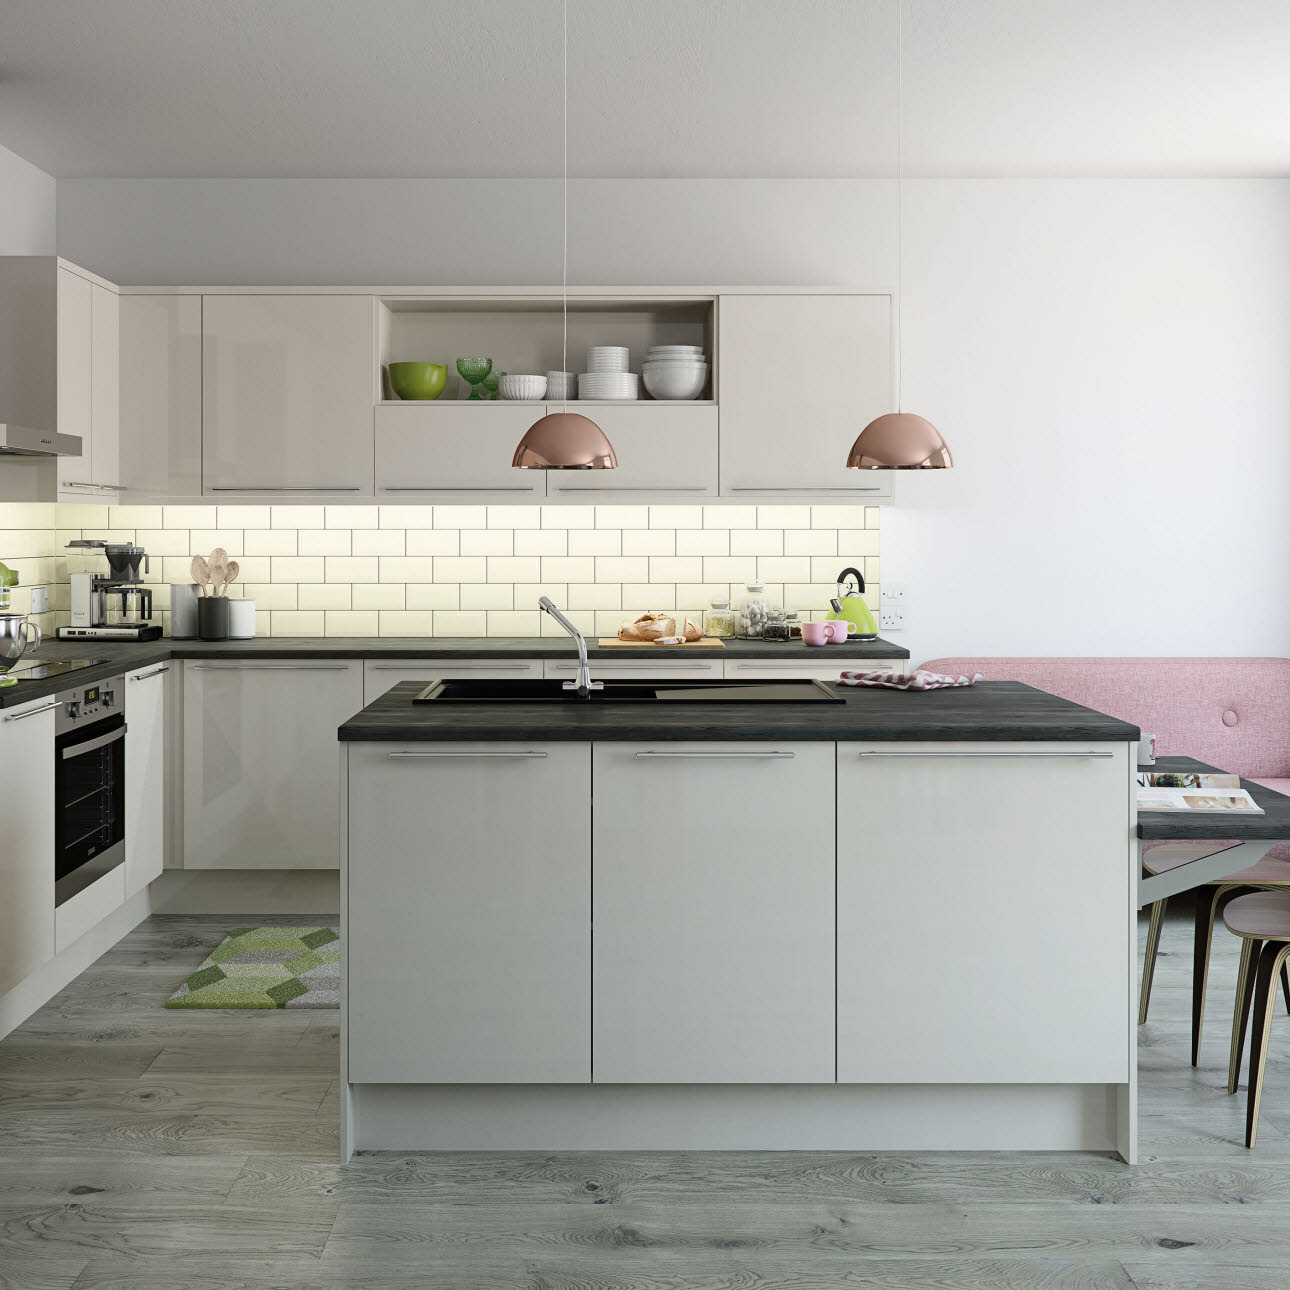 Black And Cream Kitchen Accessories: Social Housing Contract Kitchens